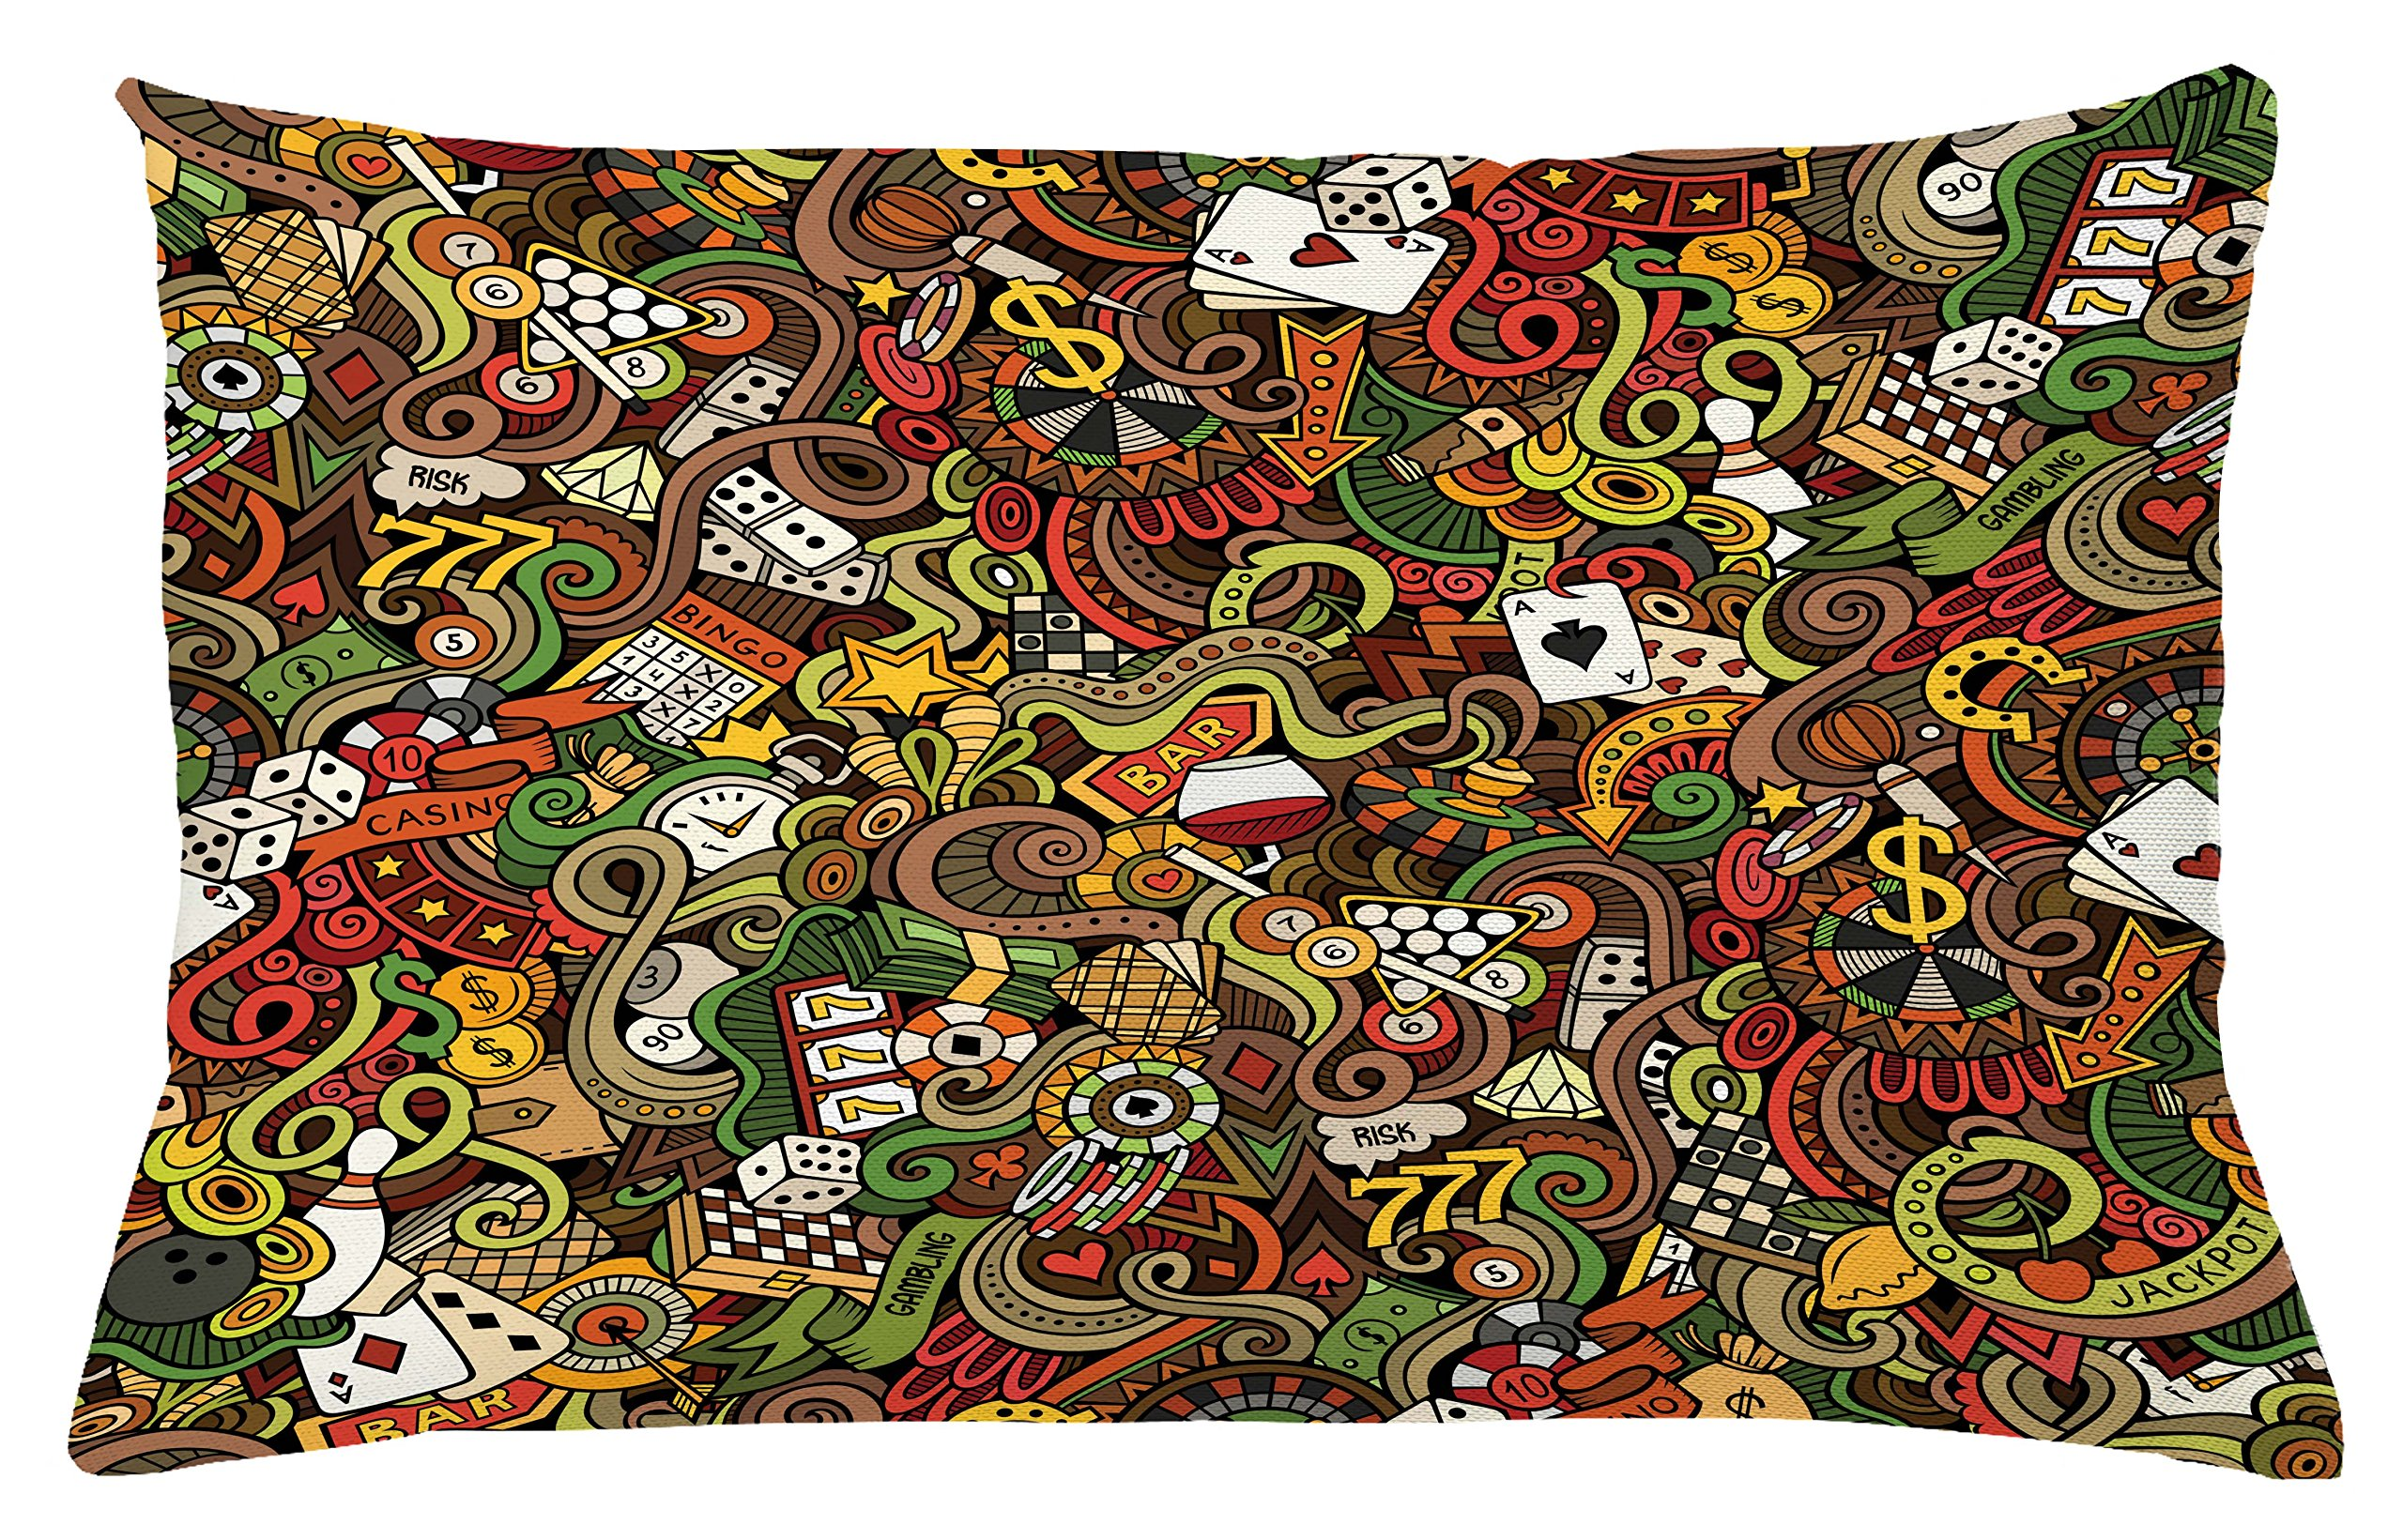 Ambesonne Casino Throw Pillow Cushion Cover, Doodles Style Artwork of Bingo and Cards Excitement Checkers King Tambourine Vegas, Decorative Accent Pillow Case, 26 W X 16 L inches, Multicolor